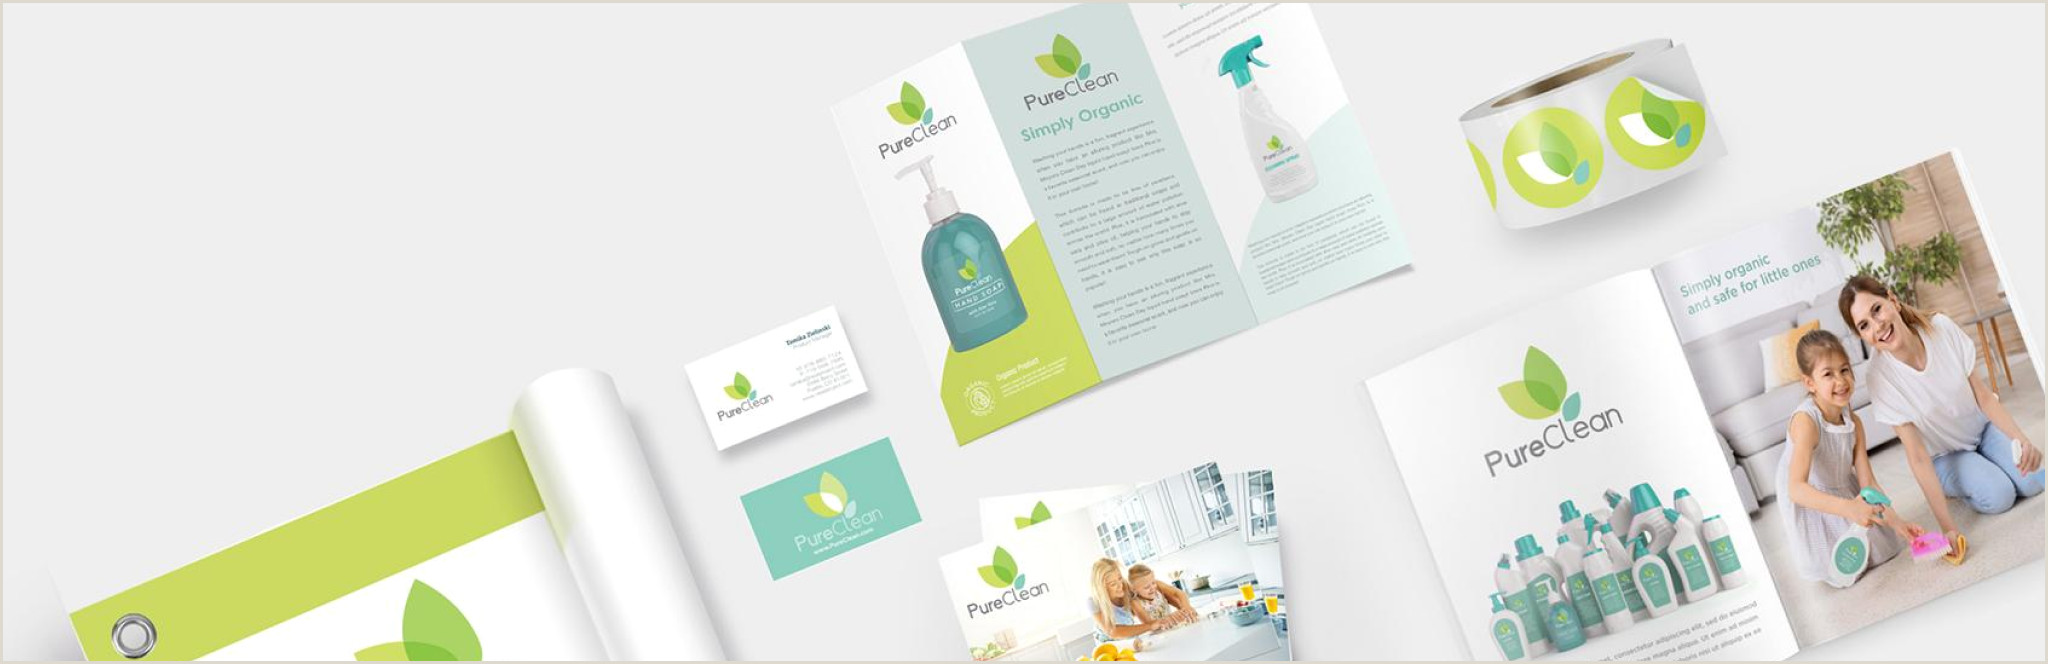 Business Cards Website Printplace High Quality Line Printing Services